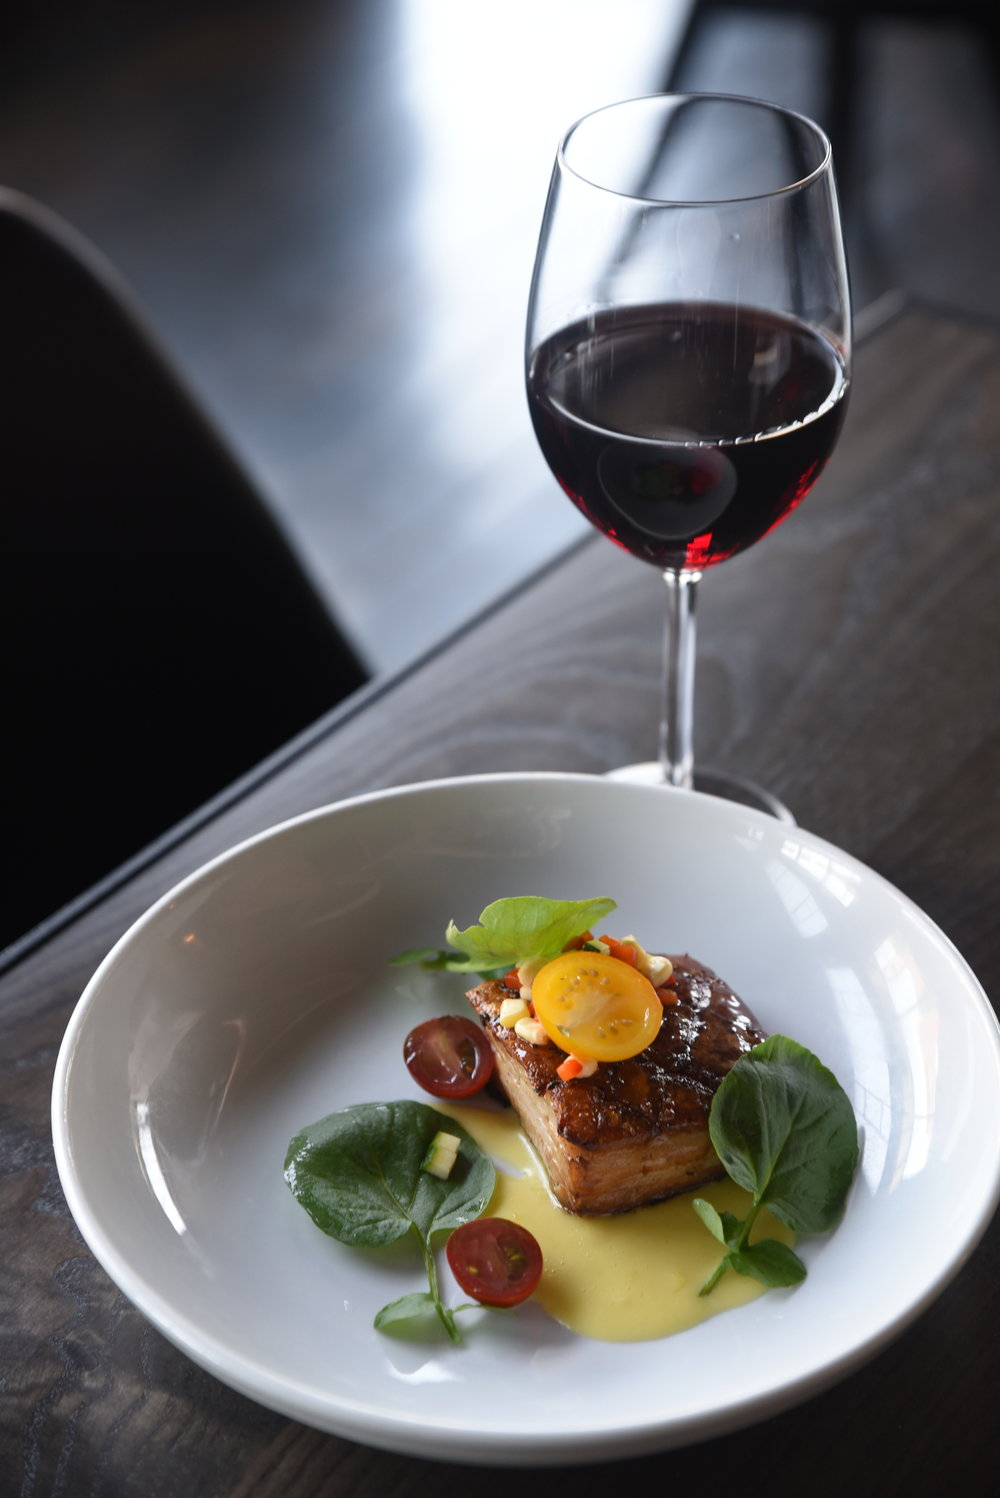 Glazed Pork Belly - Zucchini & red pepper relish, cherry tomatoes, watercress & sweet corn veloute.